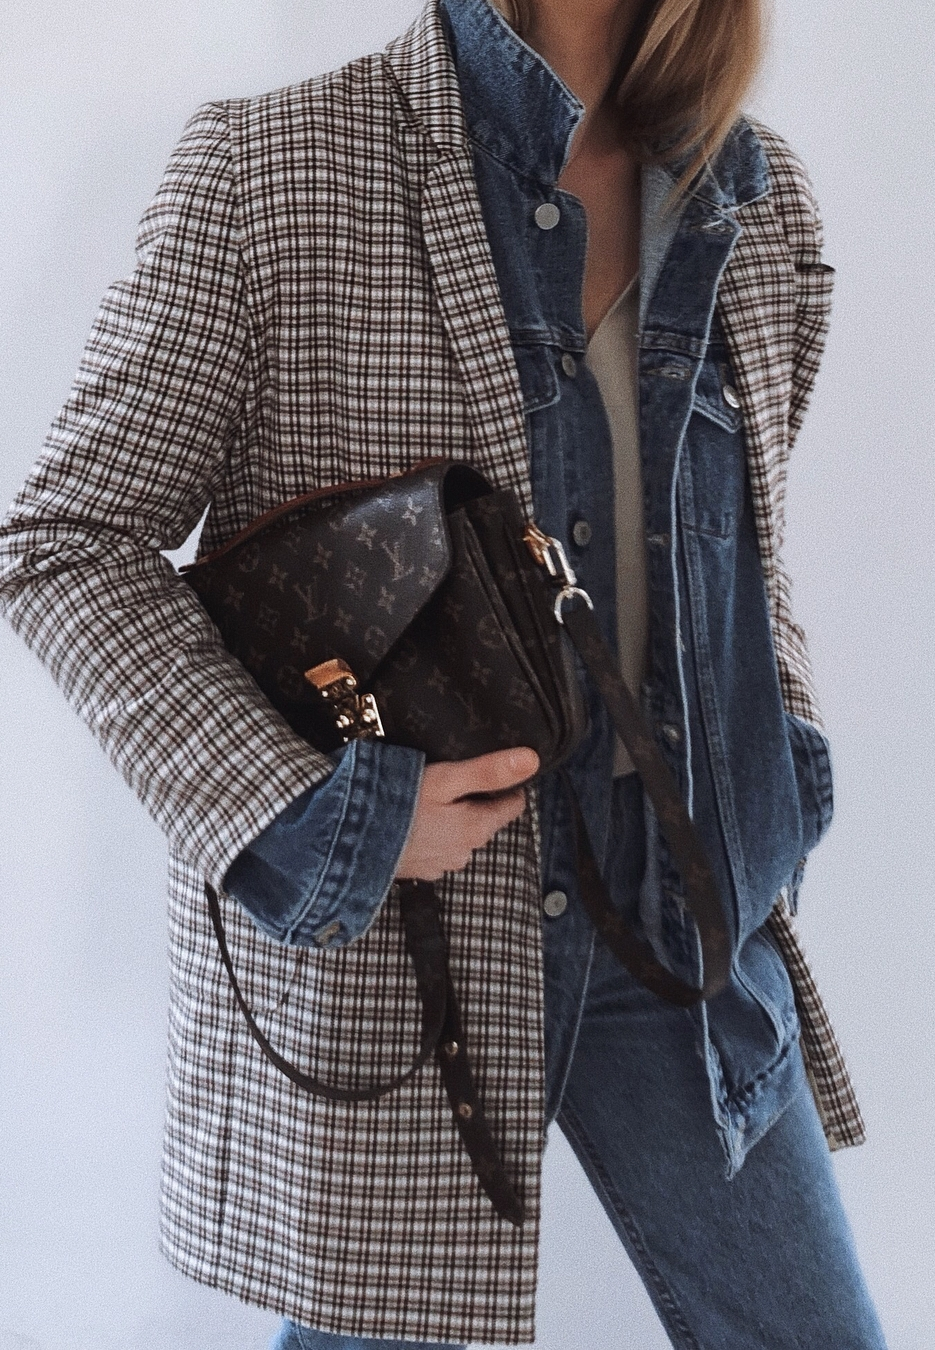 gorgeous layered outfit / plaid blazer + denim jacket + top + bag + jeans